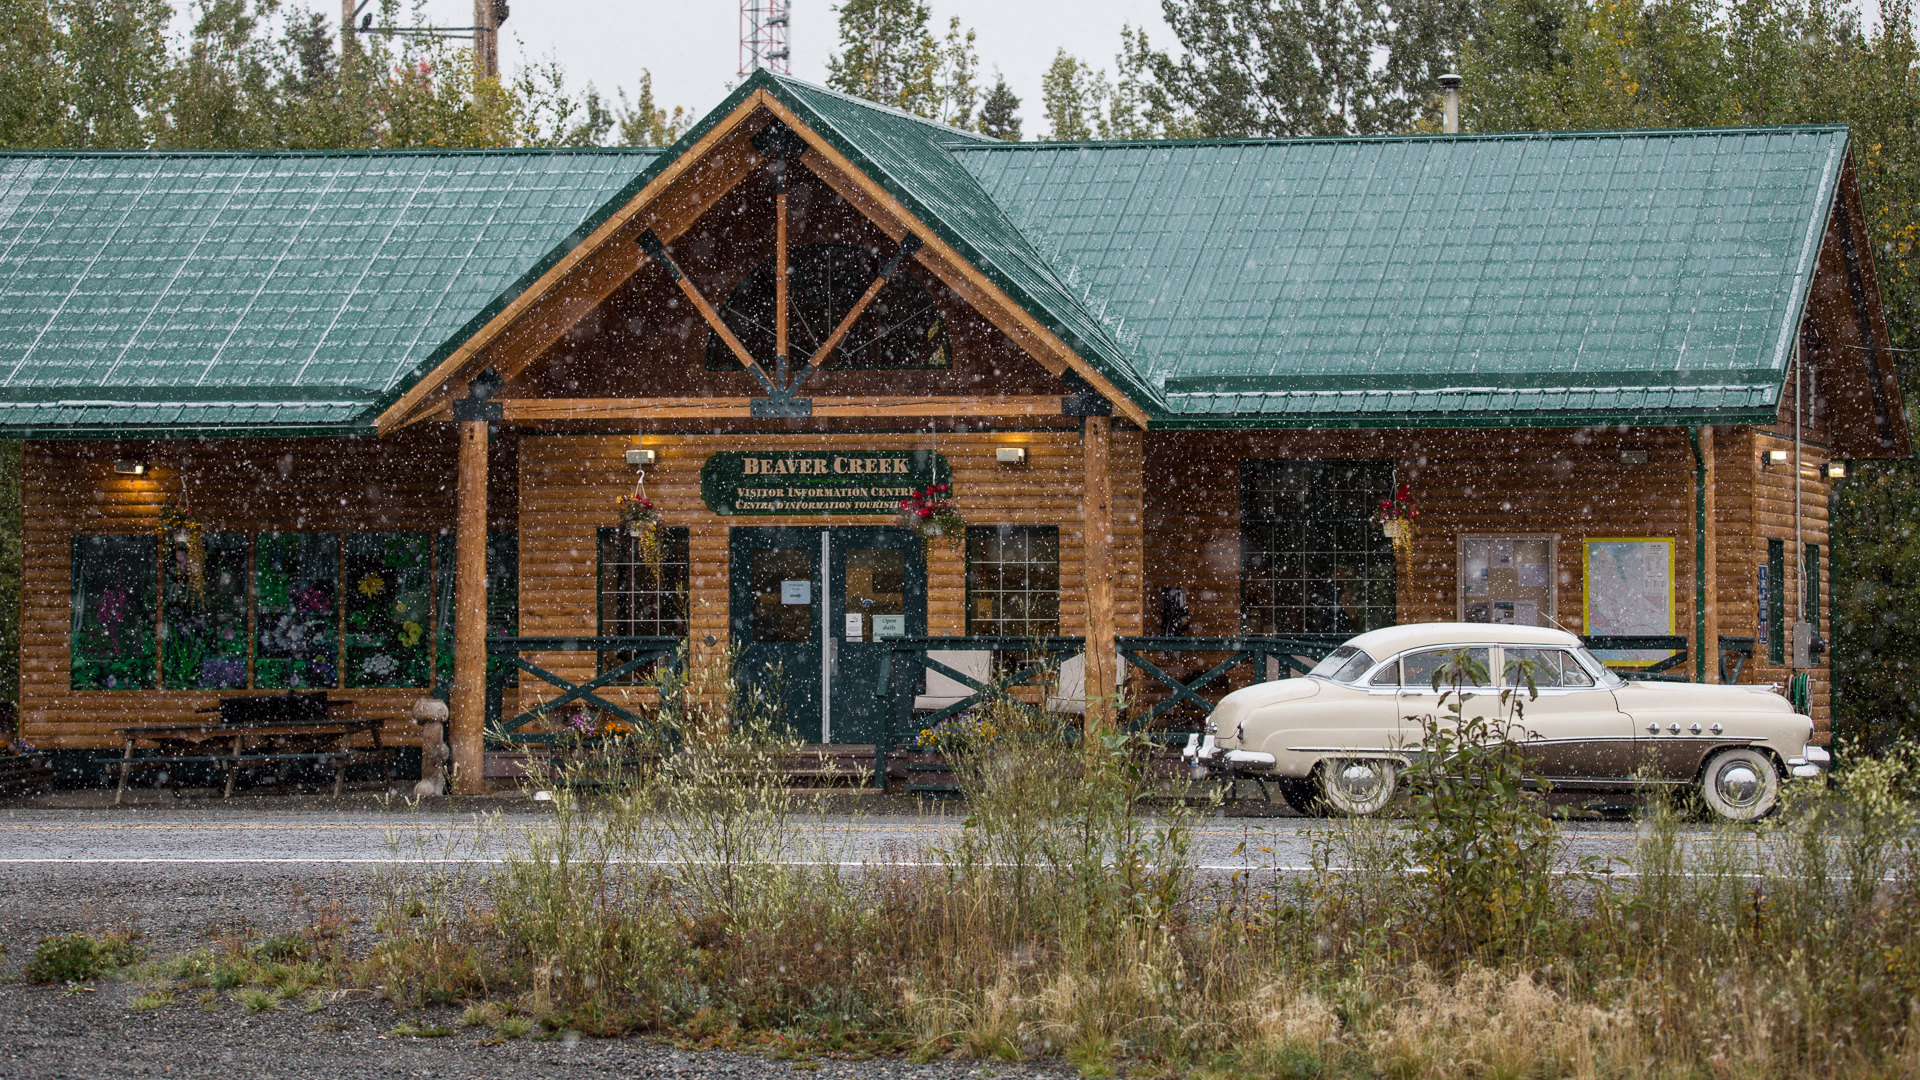 Snow coming down outside the Beaver Creek Visitor Centre